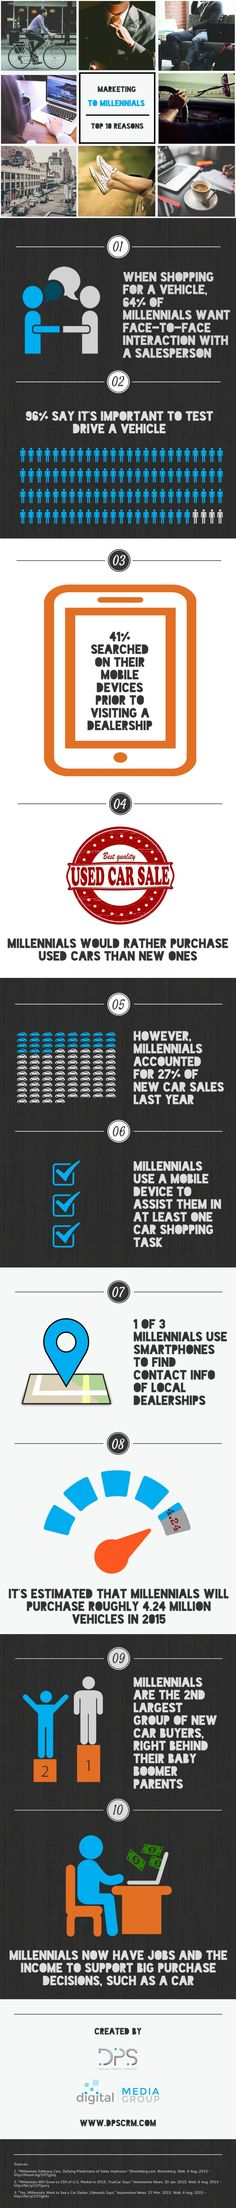 The top 10 reasons why every automotive dealership needs to start #marketing to Millennials - Infographic | Grease Monkey Search Blog